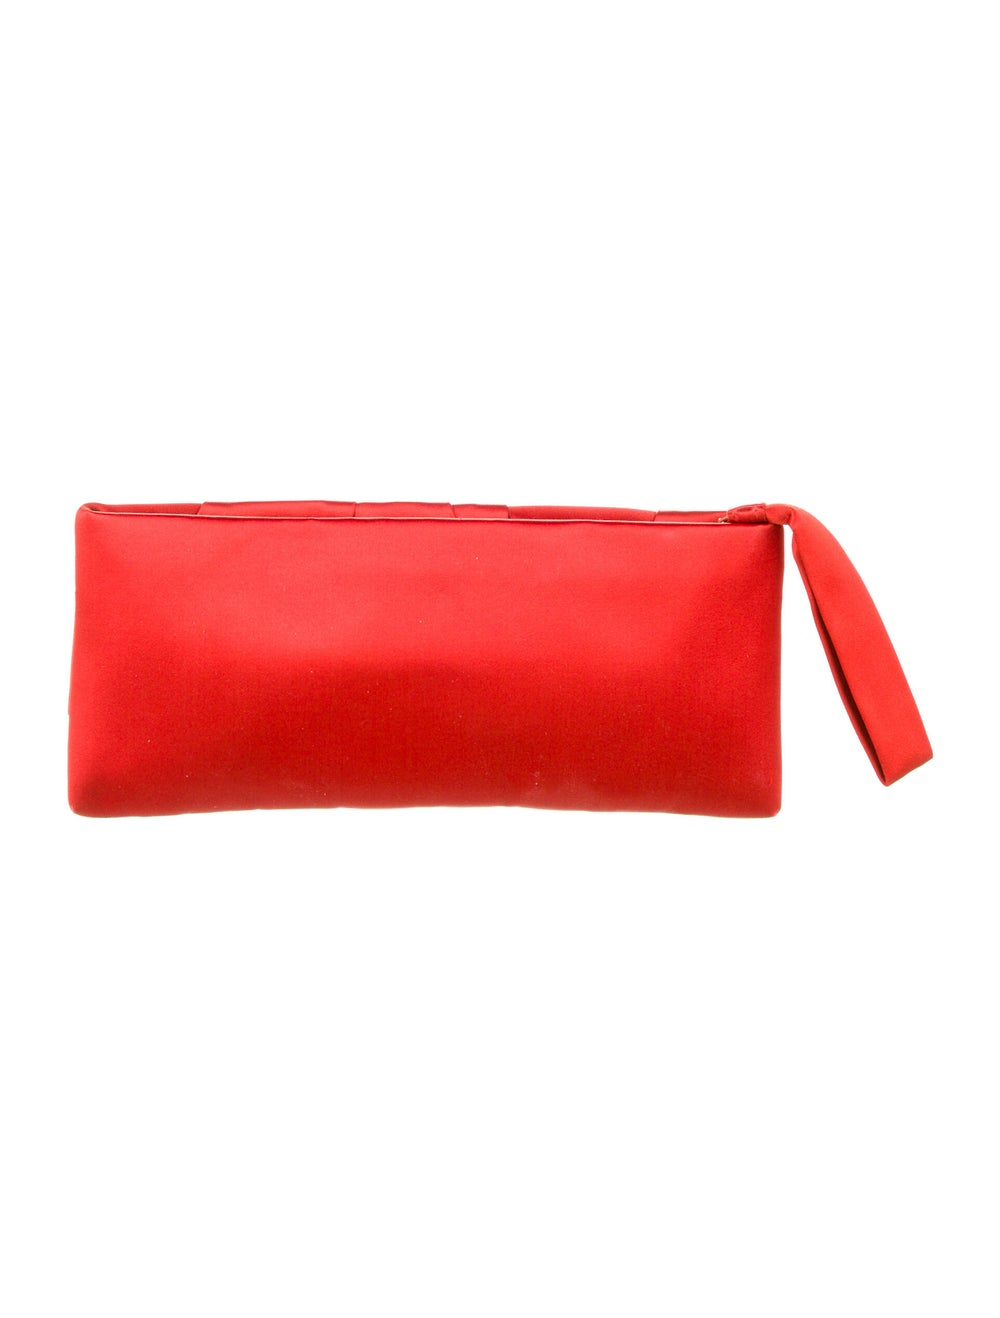 Valentino Pleated Satin Clutch Red - image 4